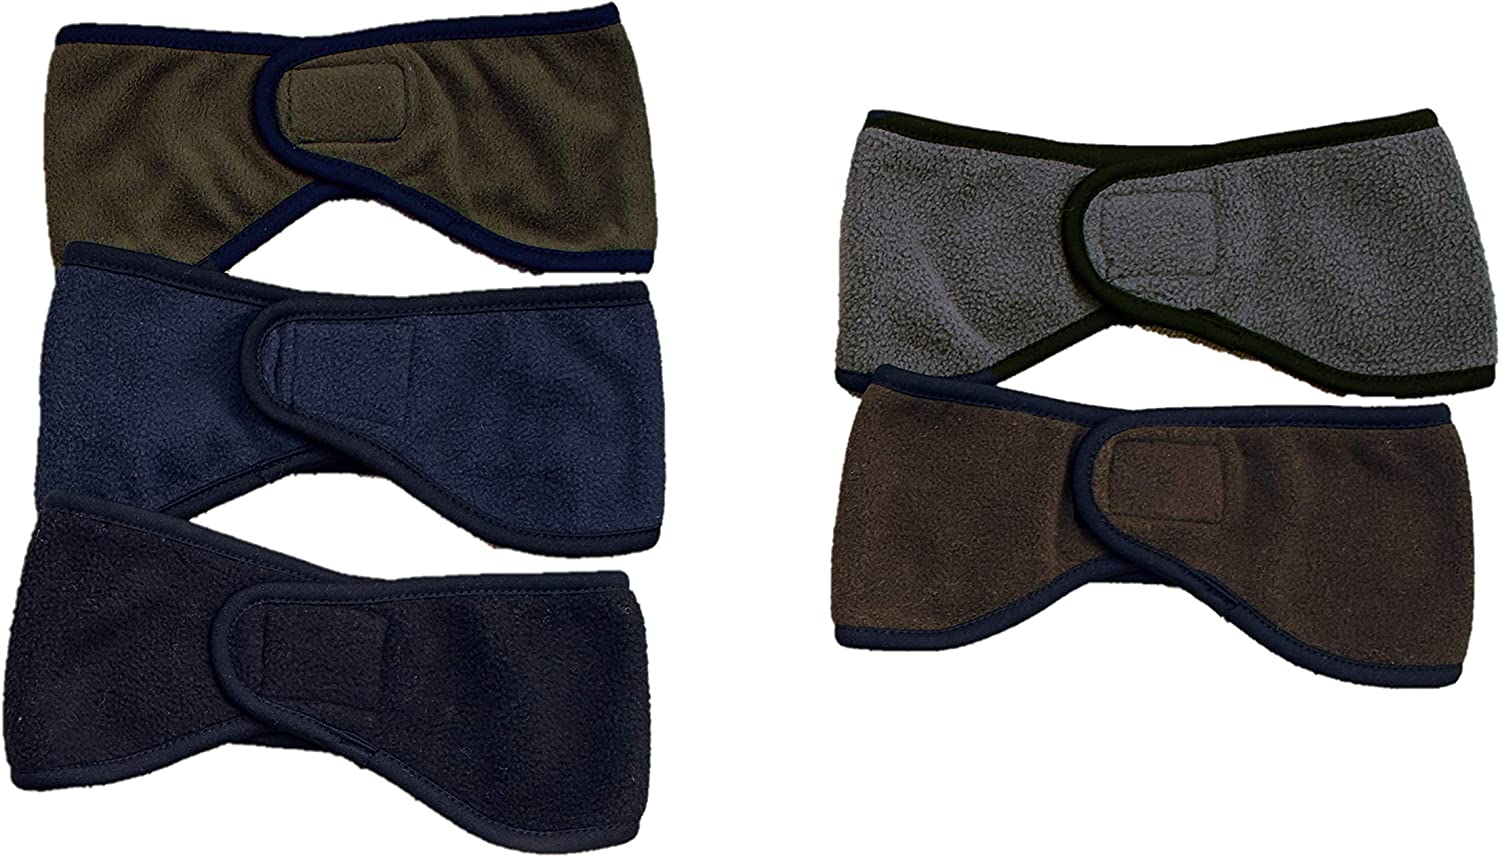 Men's Cold Weather Earbands - Headband-Style Earmuffs - Set of 5